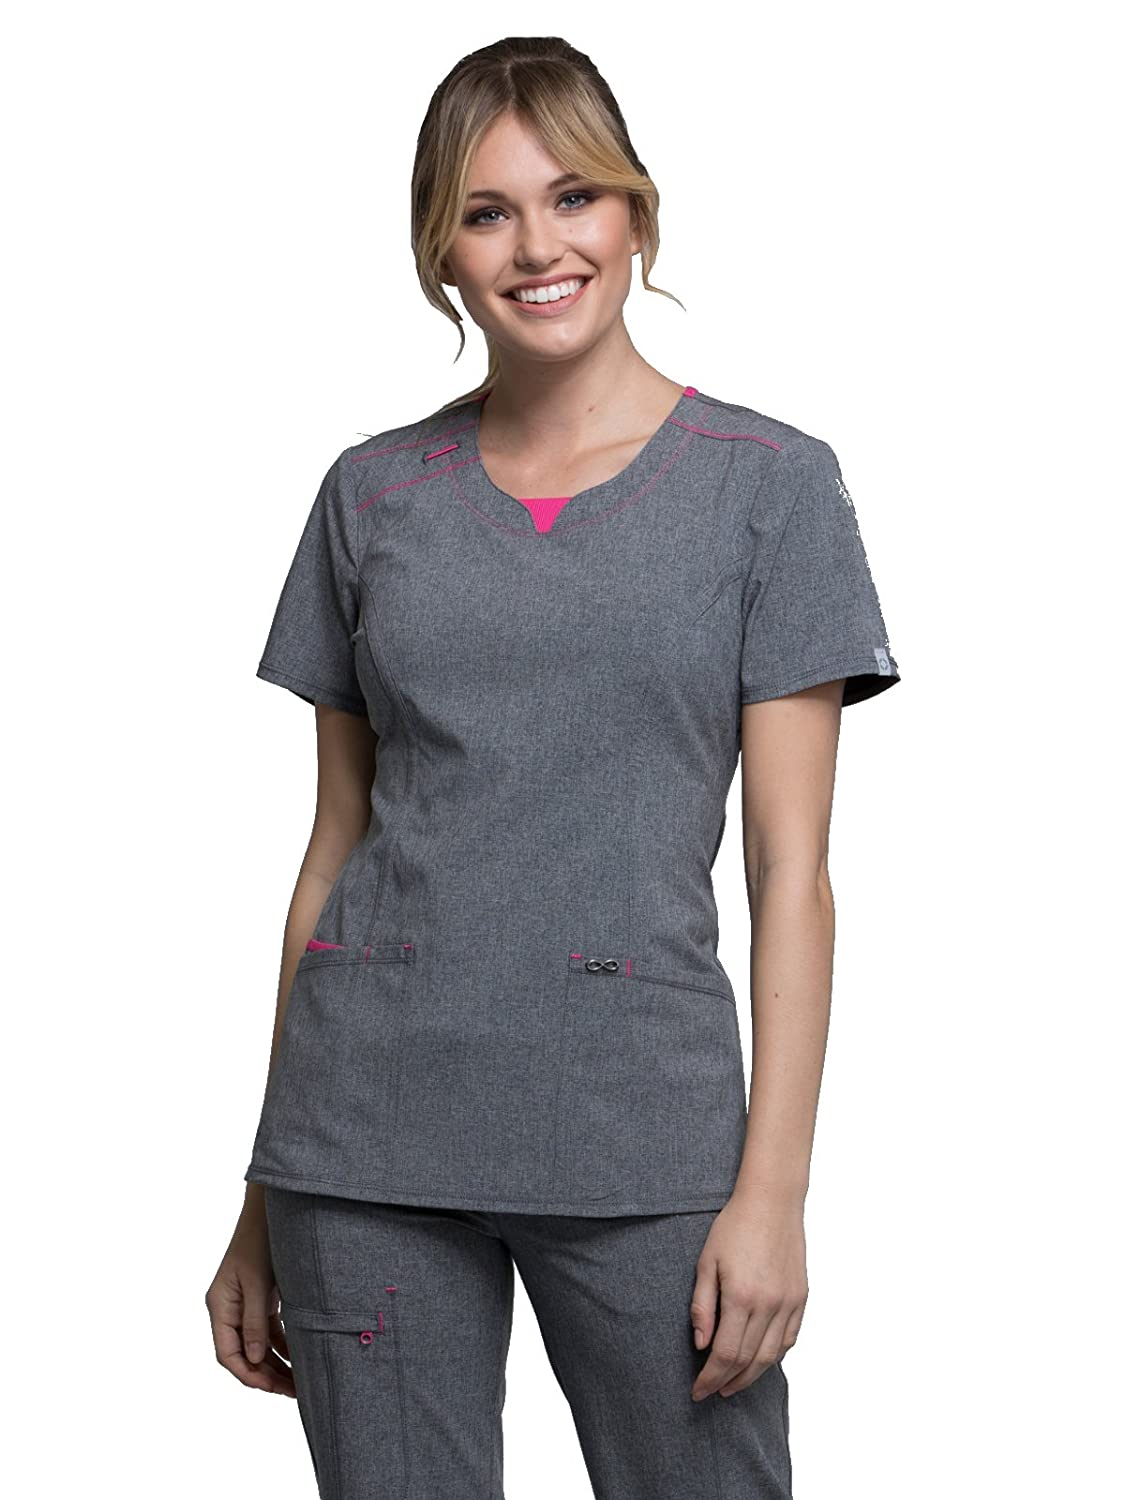 1958526d7b5 A Contemporary fit round neck top. Features a rib knit inset at the front  neckband, shoulder yokes, and a bungee I.D. badge loop on the right  shoulder.